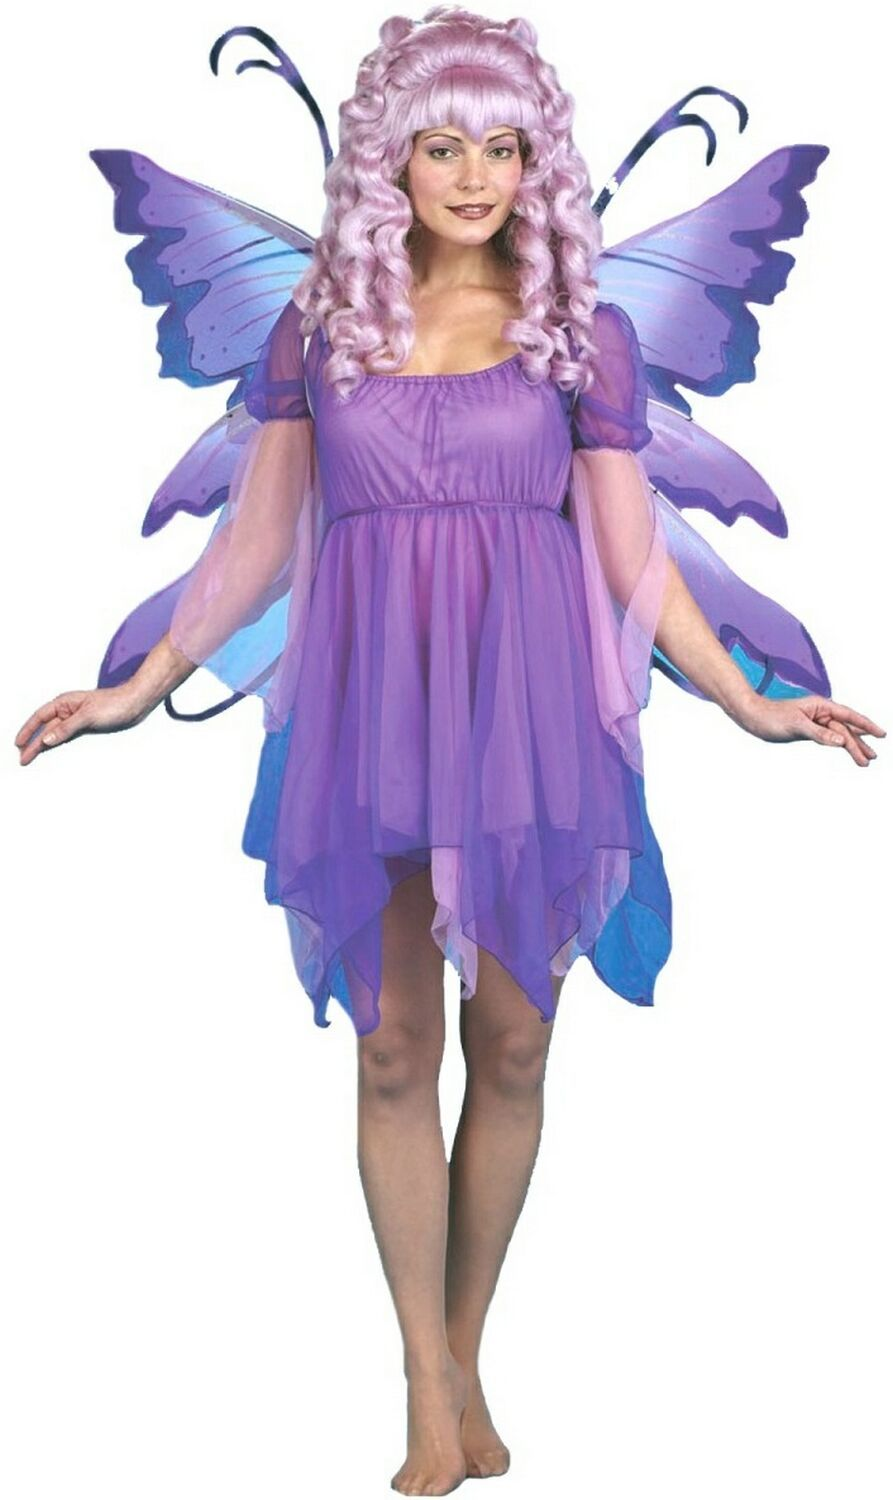 da370820c105 Fairy Costumes for Women